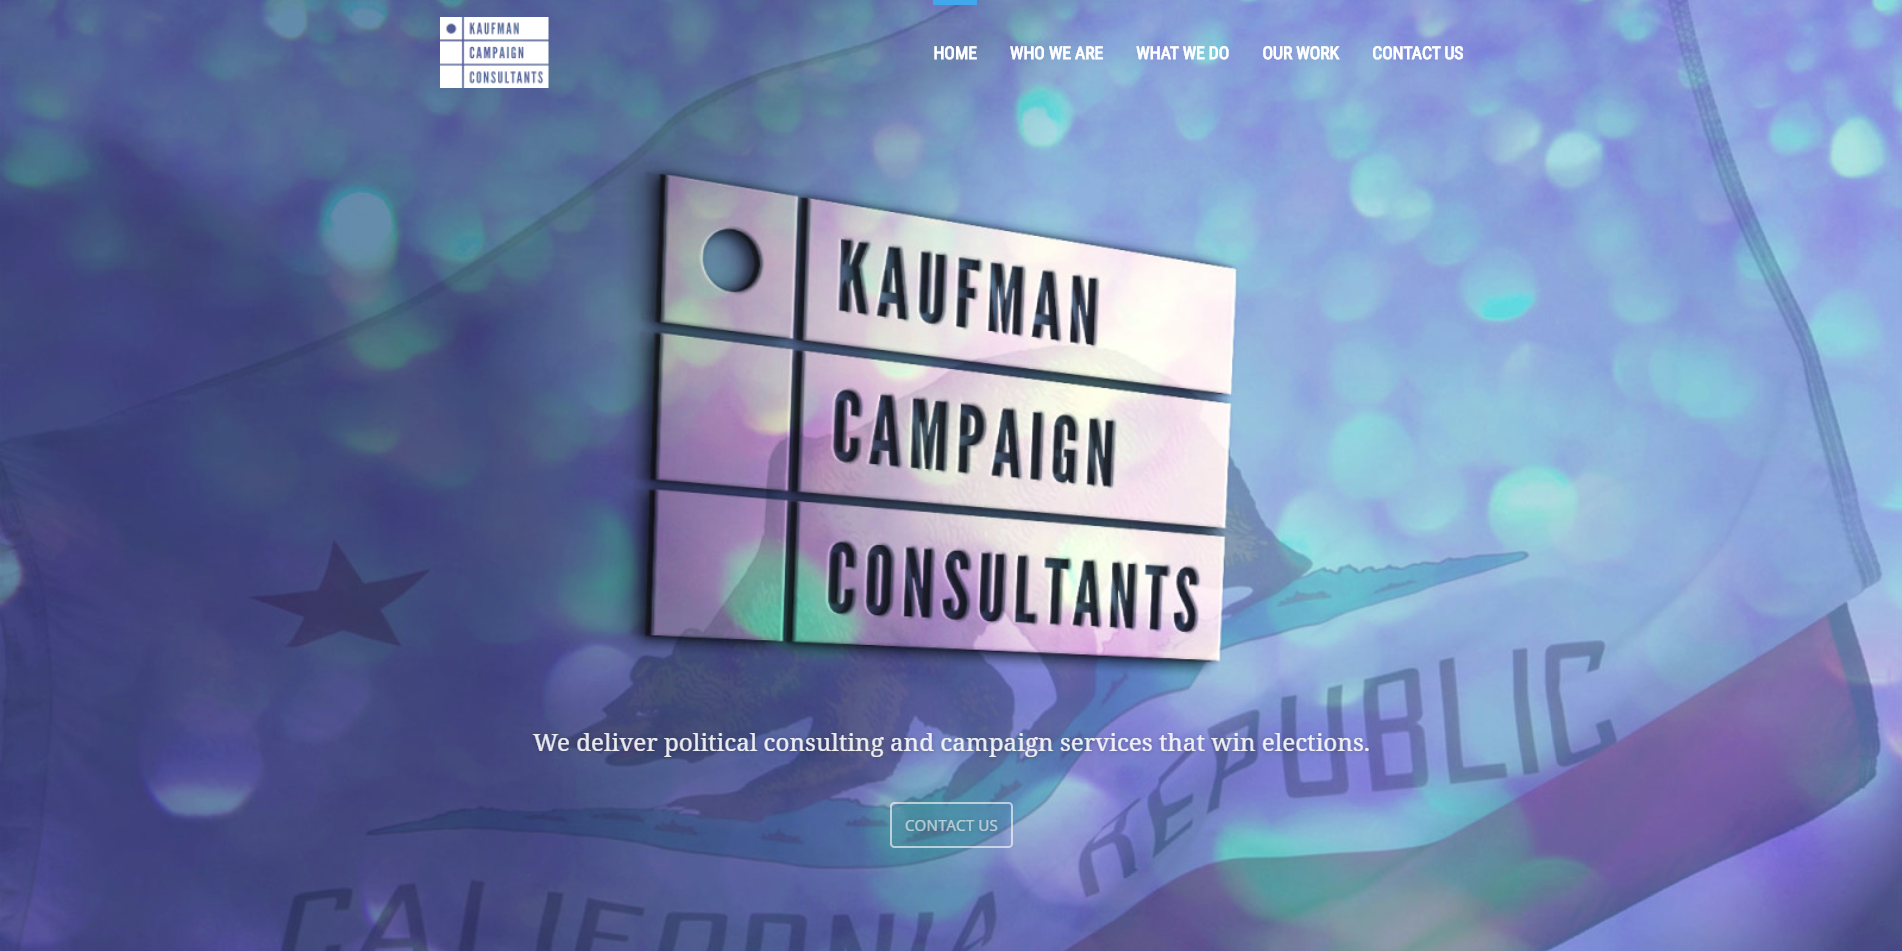 Kcc Lead Consultant For Over 70 Congressional California State Senate And Assembly Campaigns Web Design Campaign Rebranding